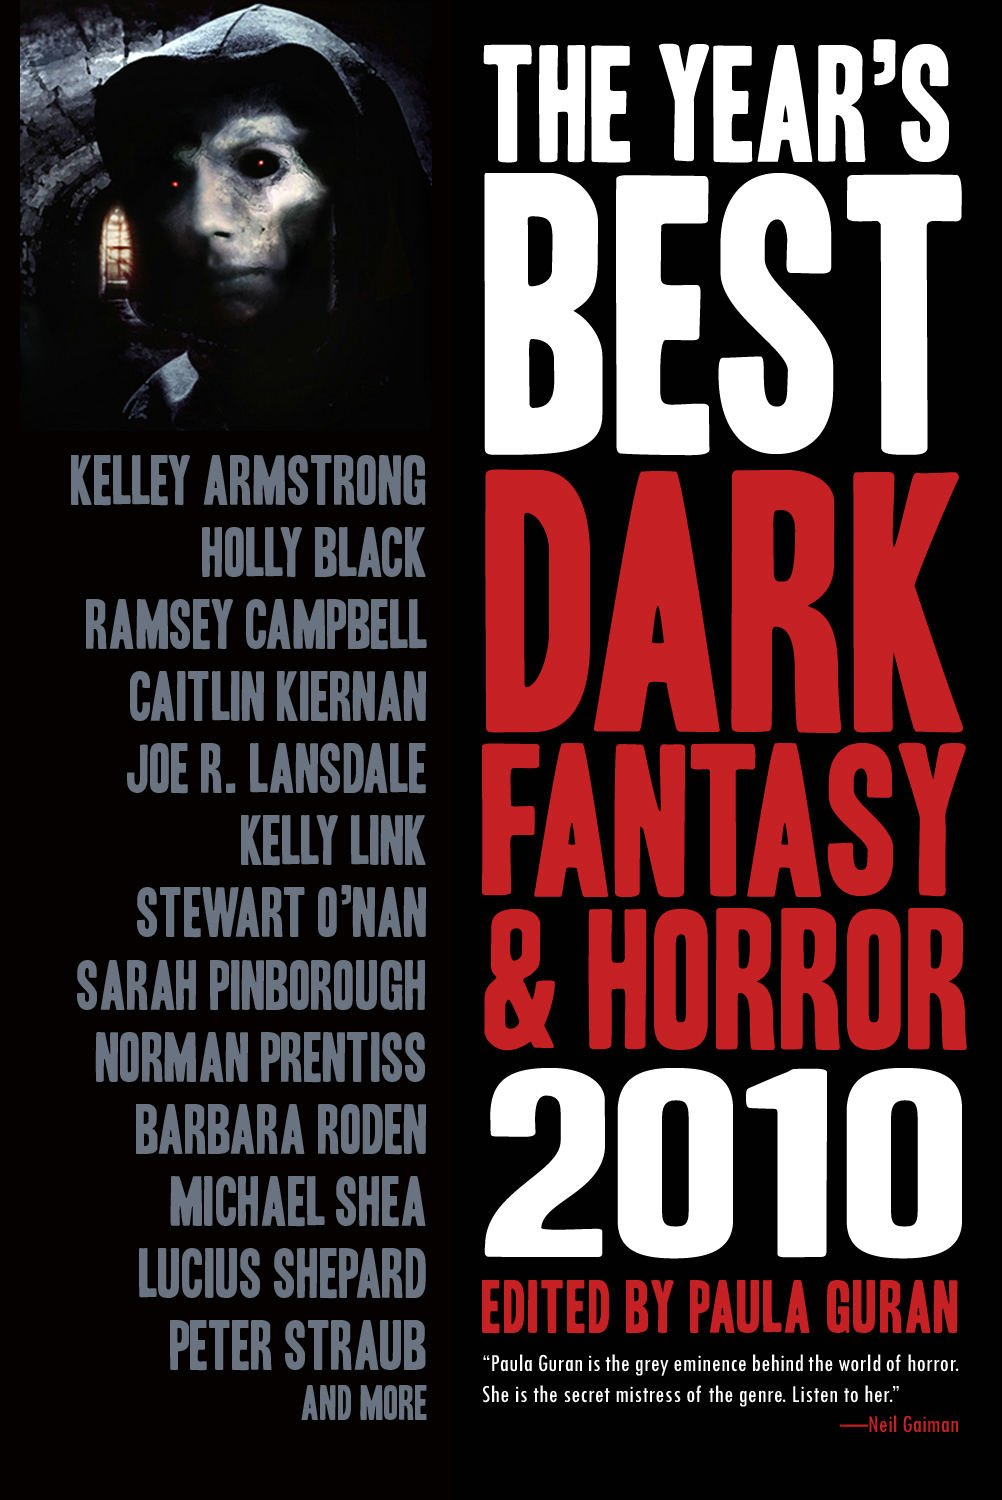 The Warrior Muse: Horror List Book Review: The Year's Best